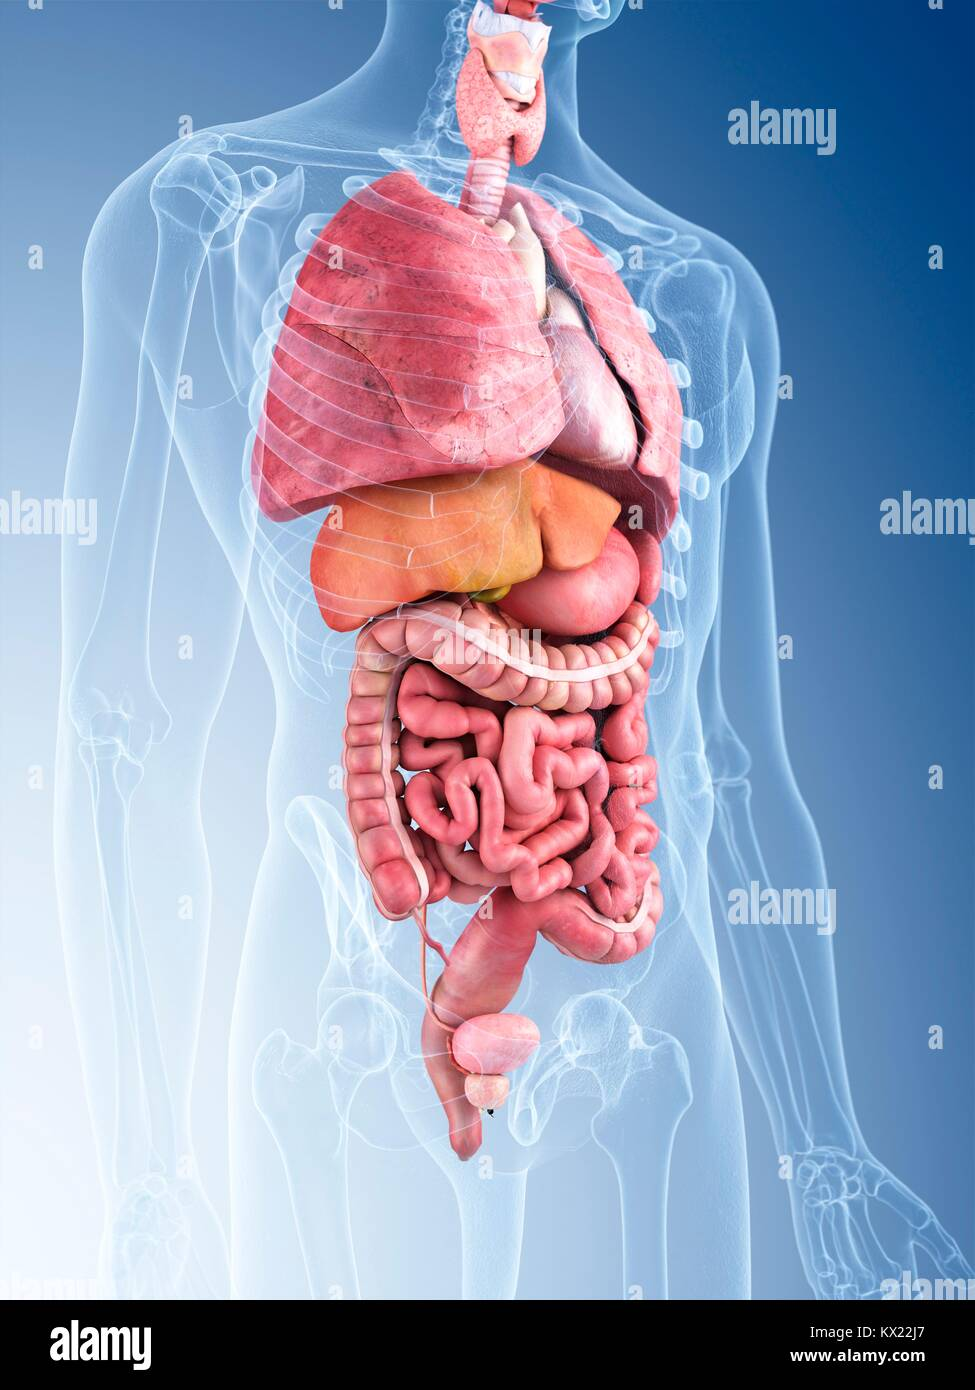 Human Internal Organs Illustration Stock Photo 170920351 Alamy